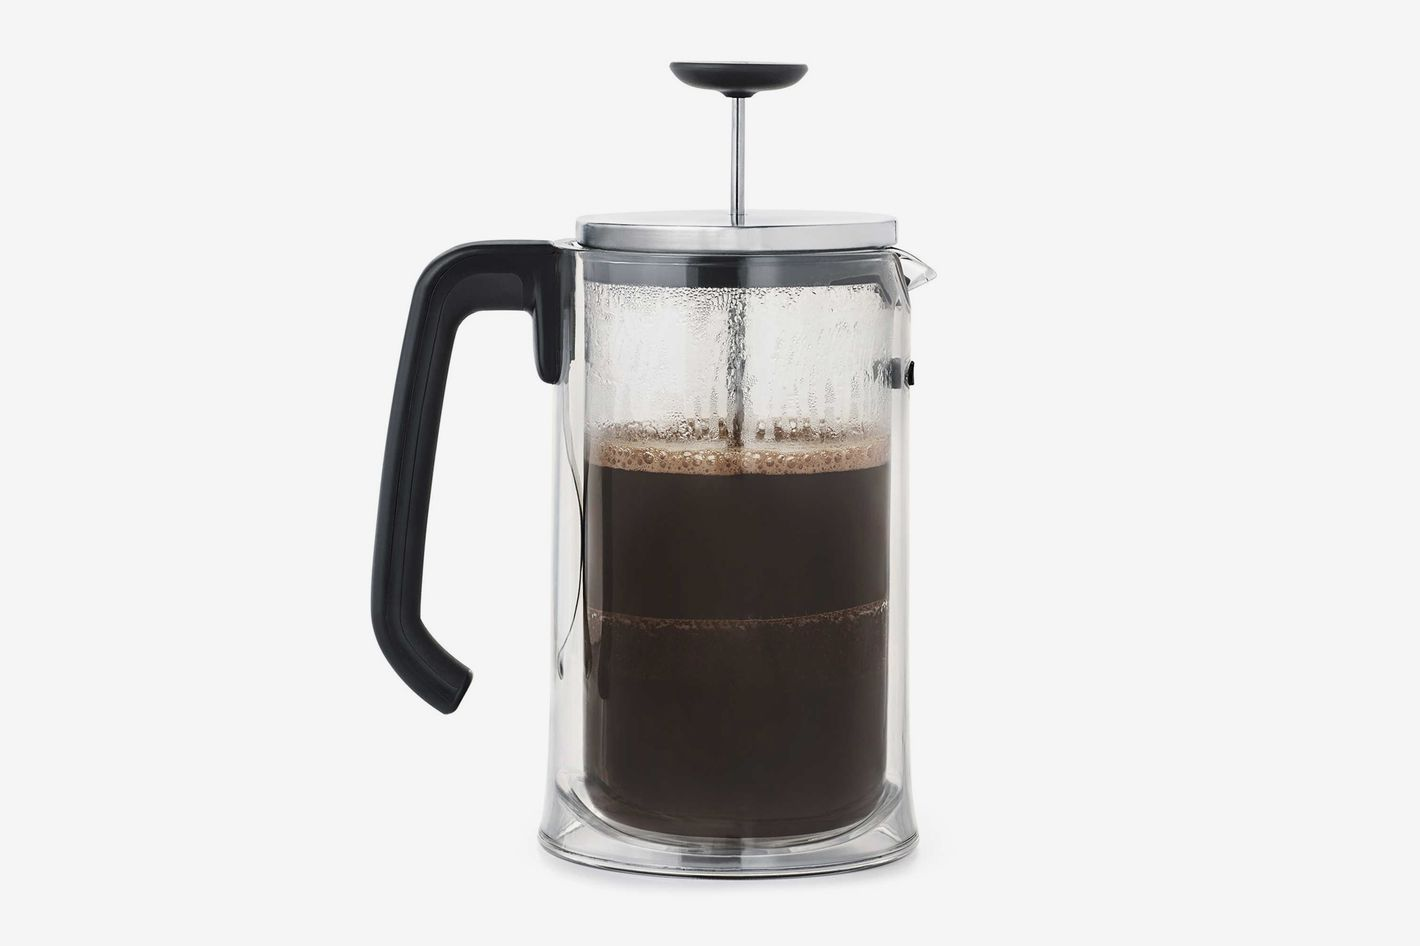 OXO Good Grips 8-Cup French Press Coffee Maker in Clear